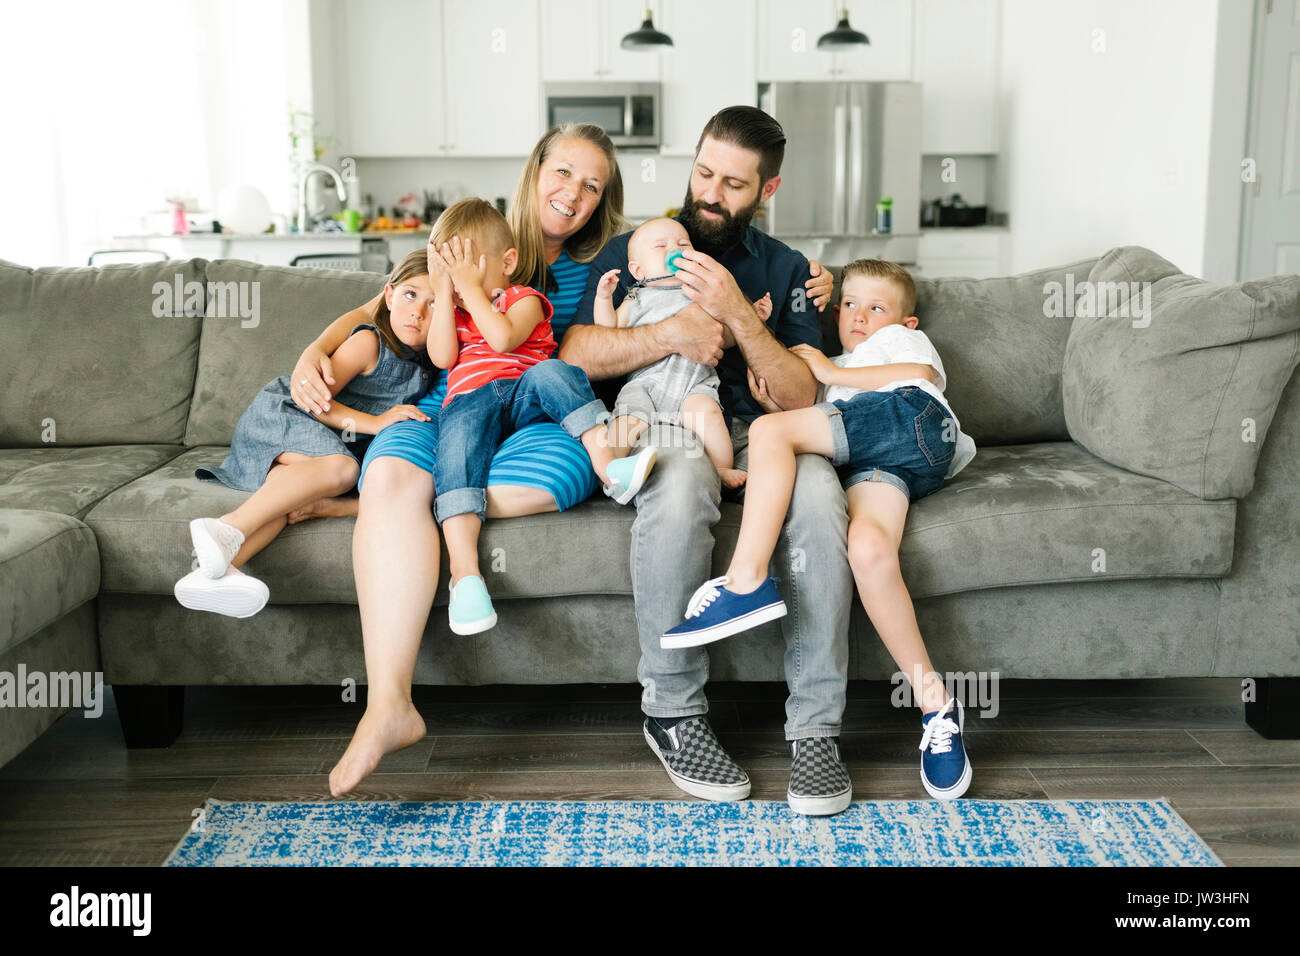 Family with four children (6-11 months, 2-3, 6-7) spending time on sofa - Stock Image